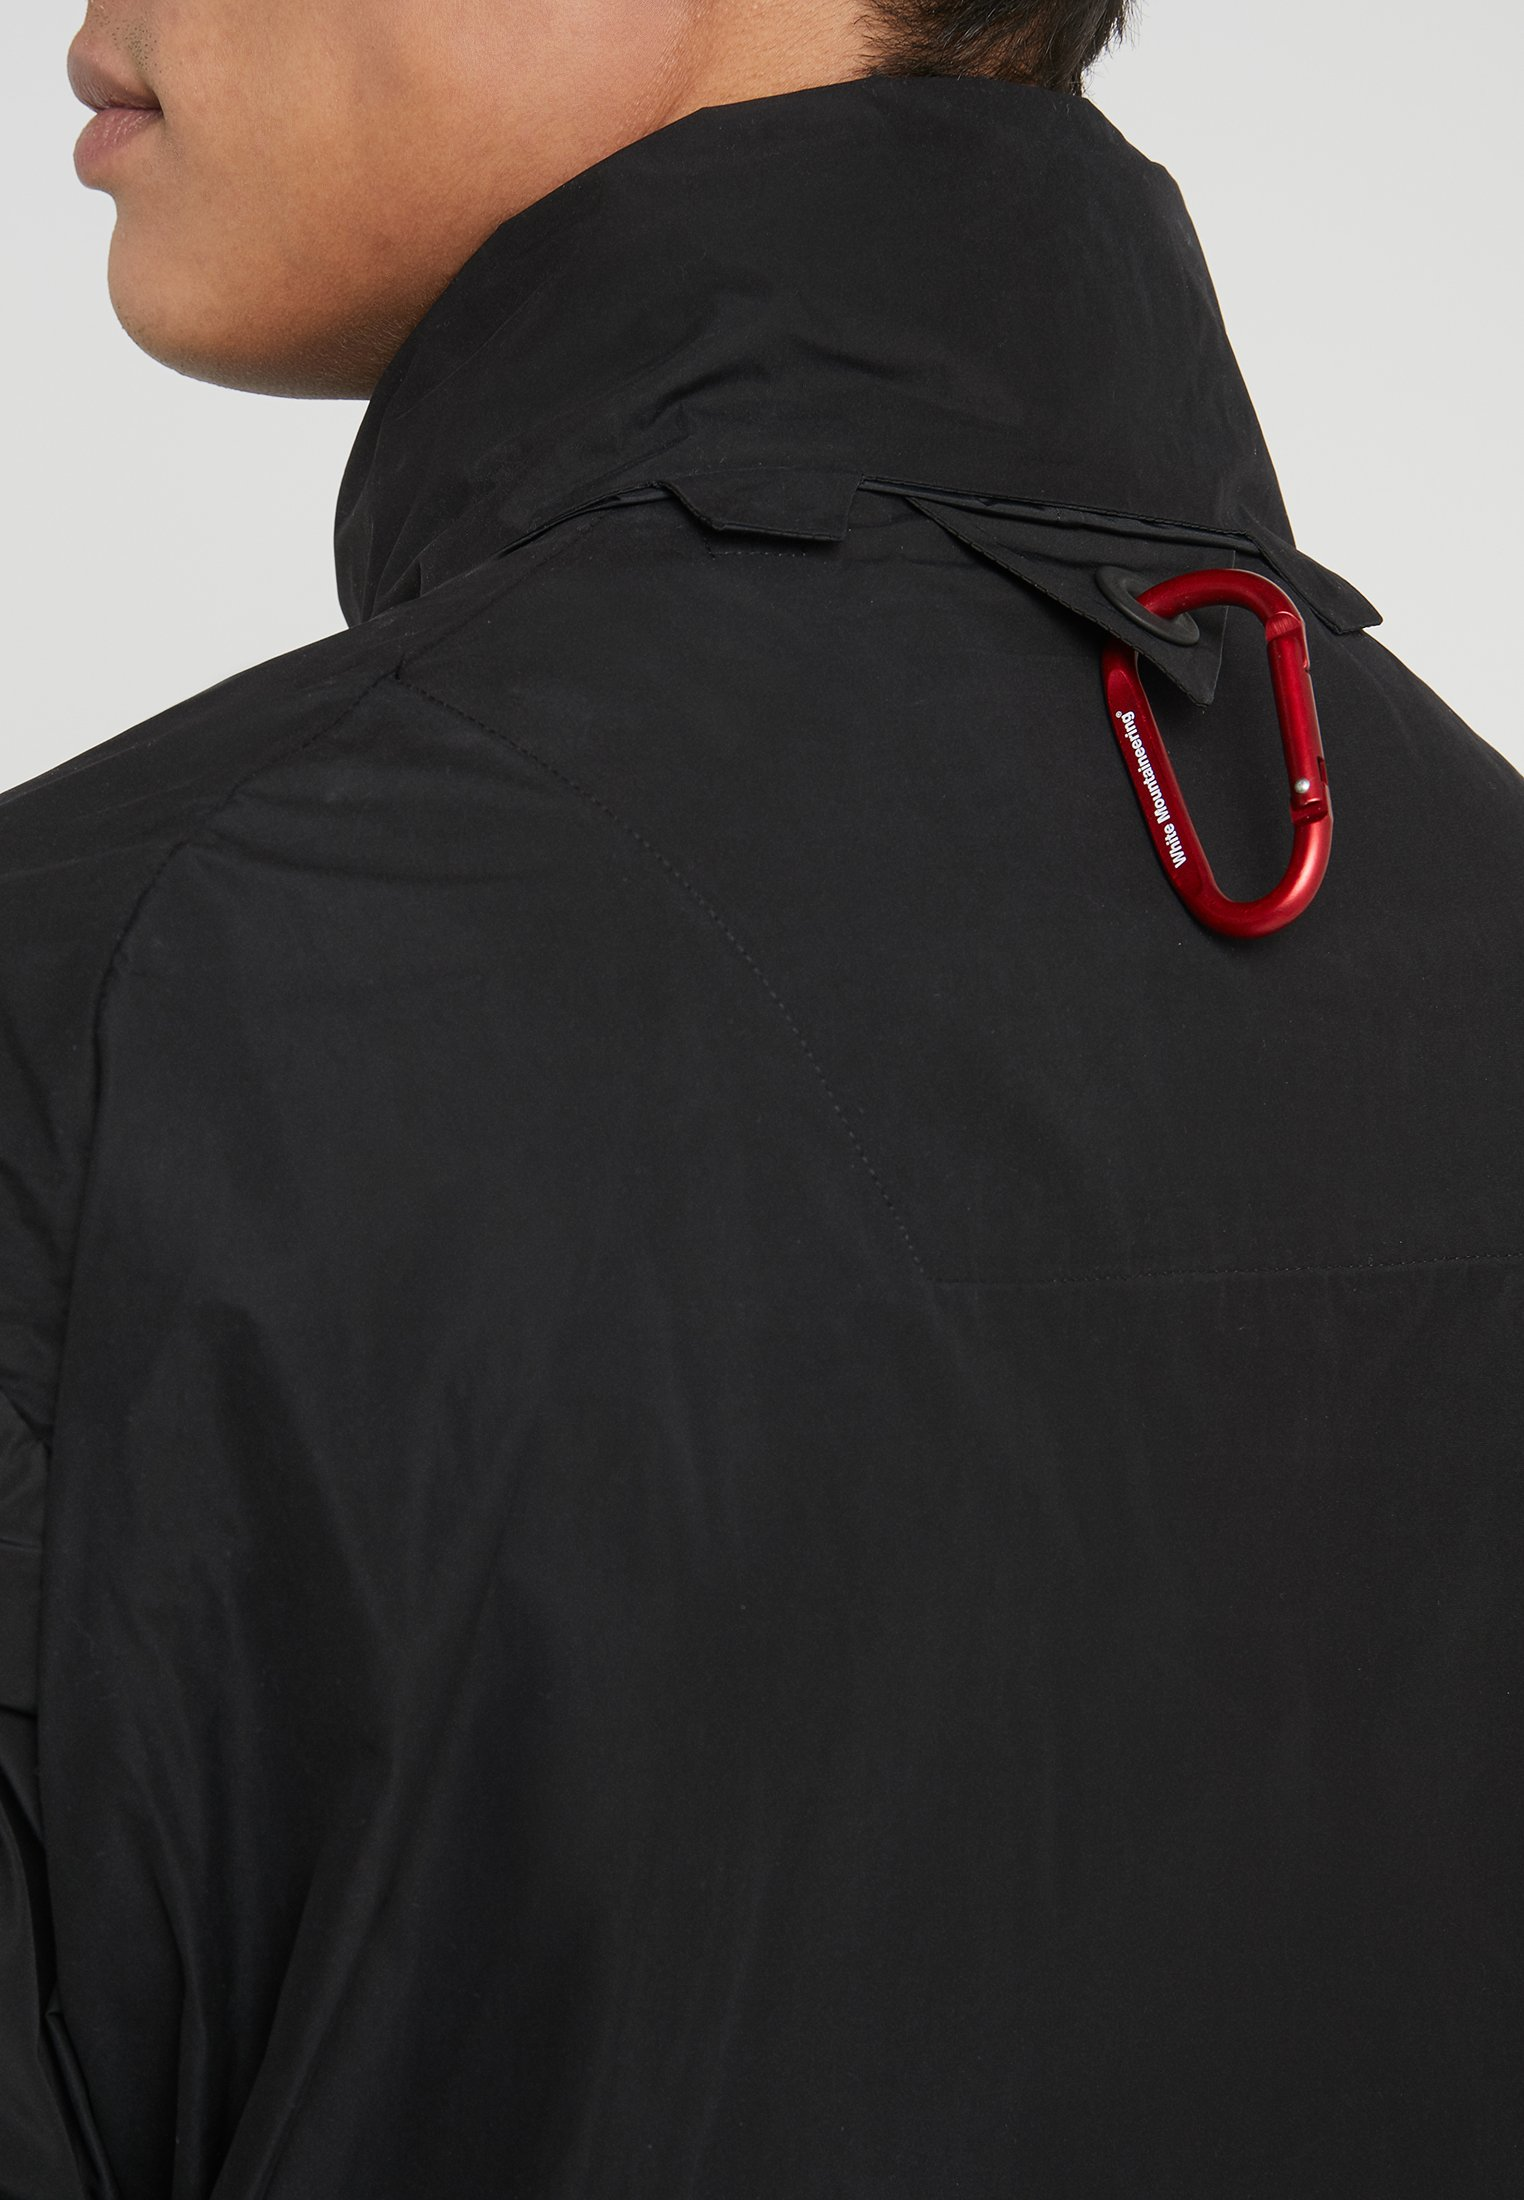 Track Logo White Mountaineering BlousonGiacca Outdoor Black Taped JK1Ful3Tc